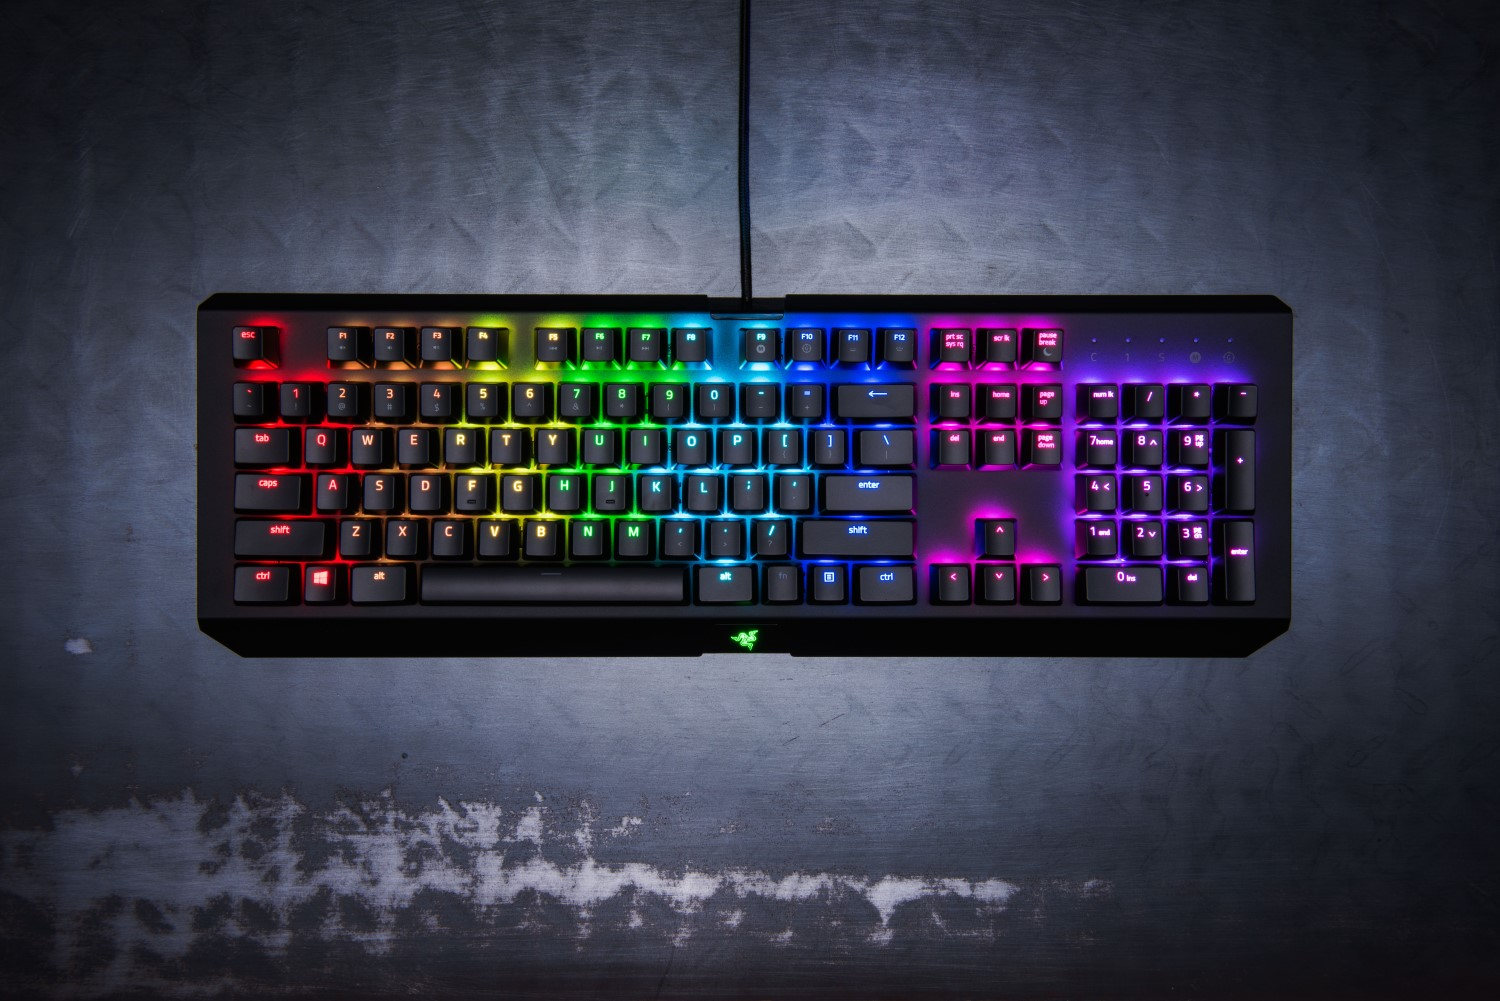 Razer Blackwidow X Chroma Mechanical Keyboard